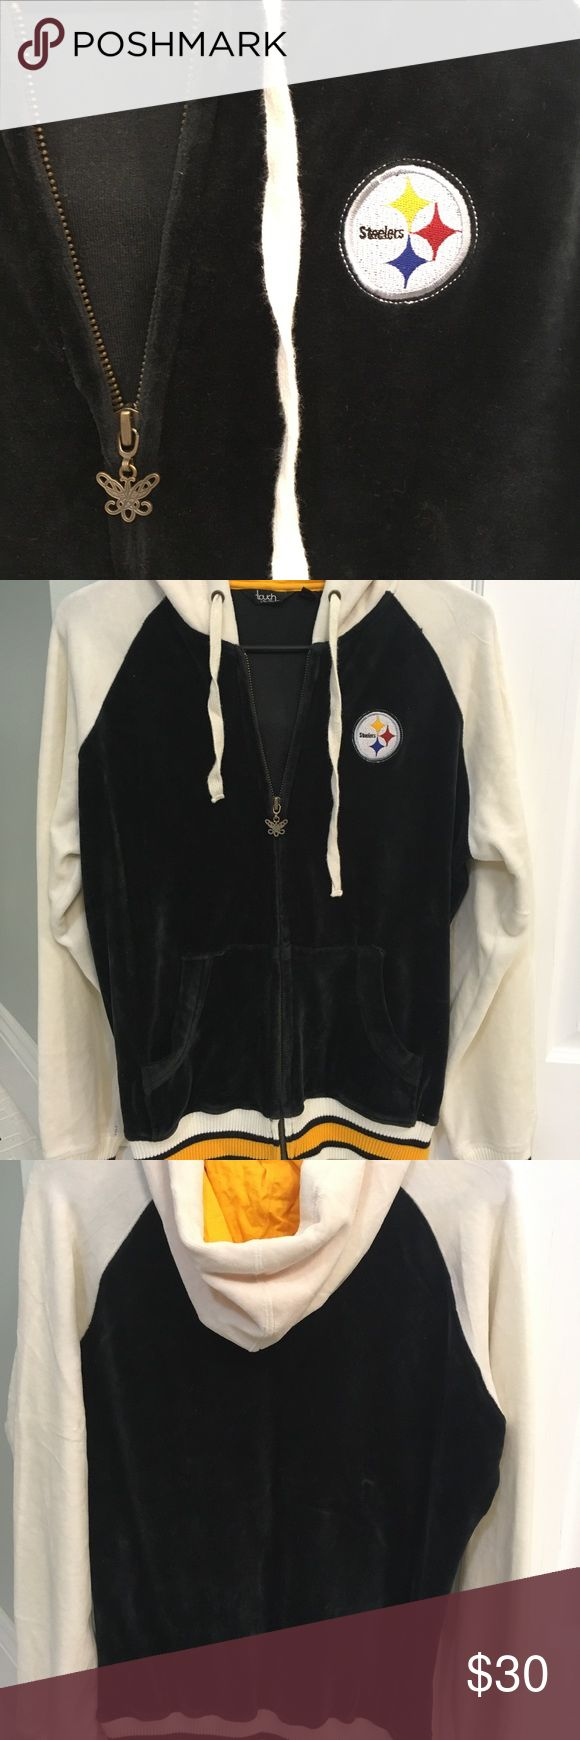 Pittsburgh Steelers zip up hoodie jacket Steelers zip up hoodie jacket. Velour type material, very nice condition, worn only a few times. Size large women's. Tops Sweatshirts & Hoodies